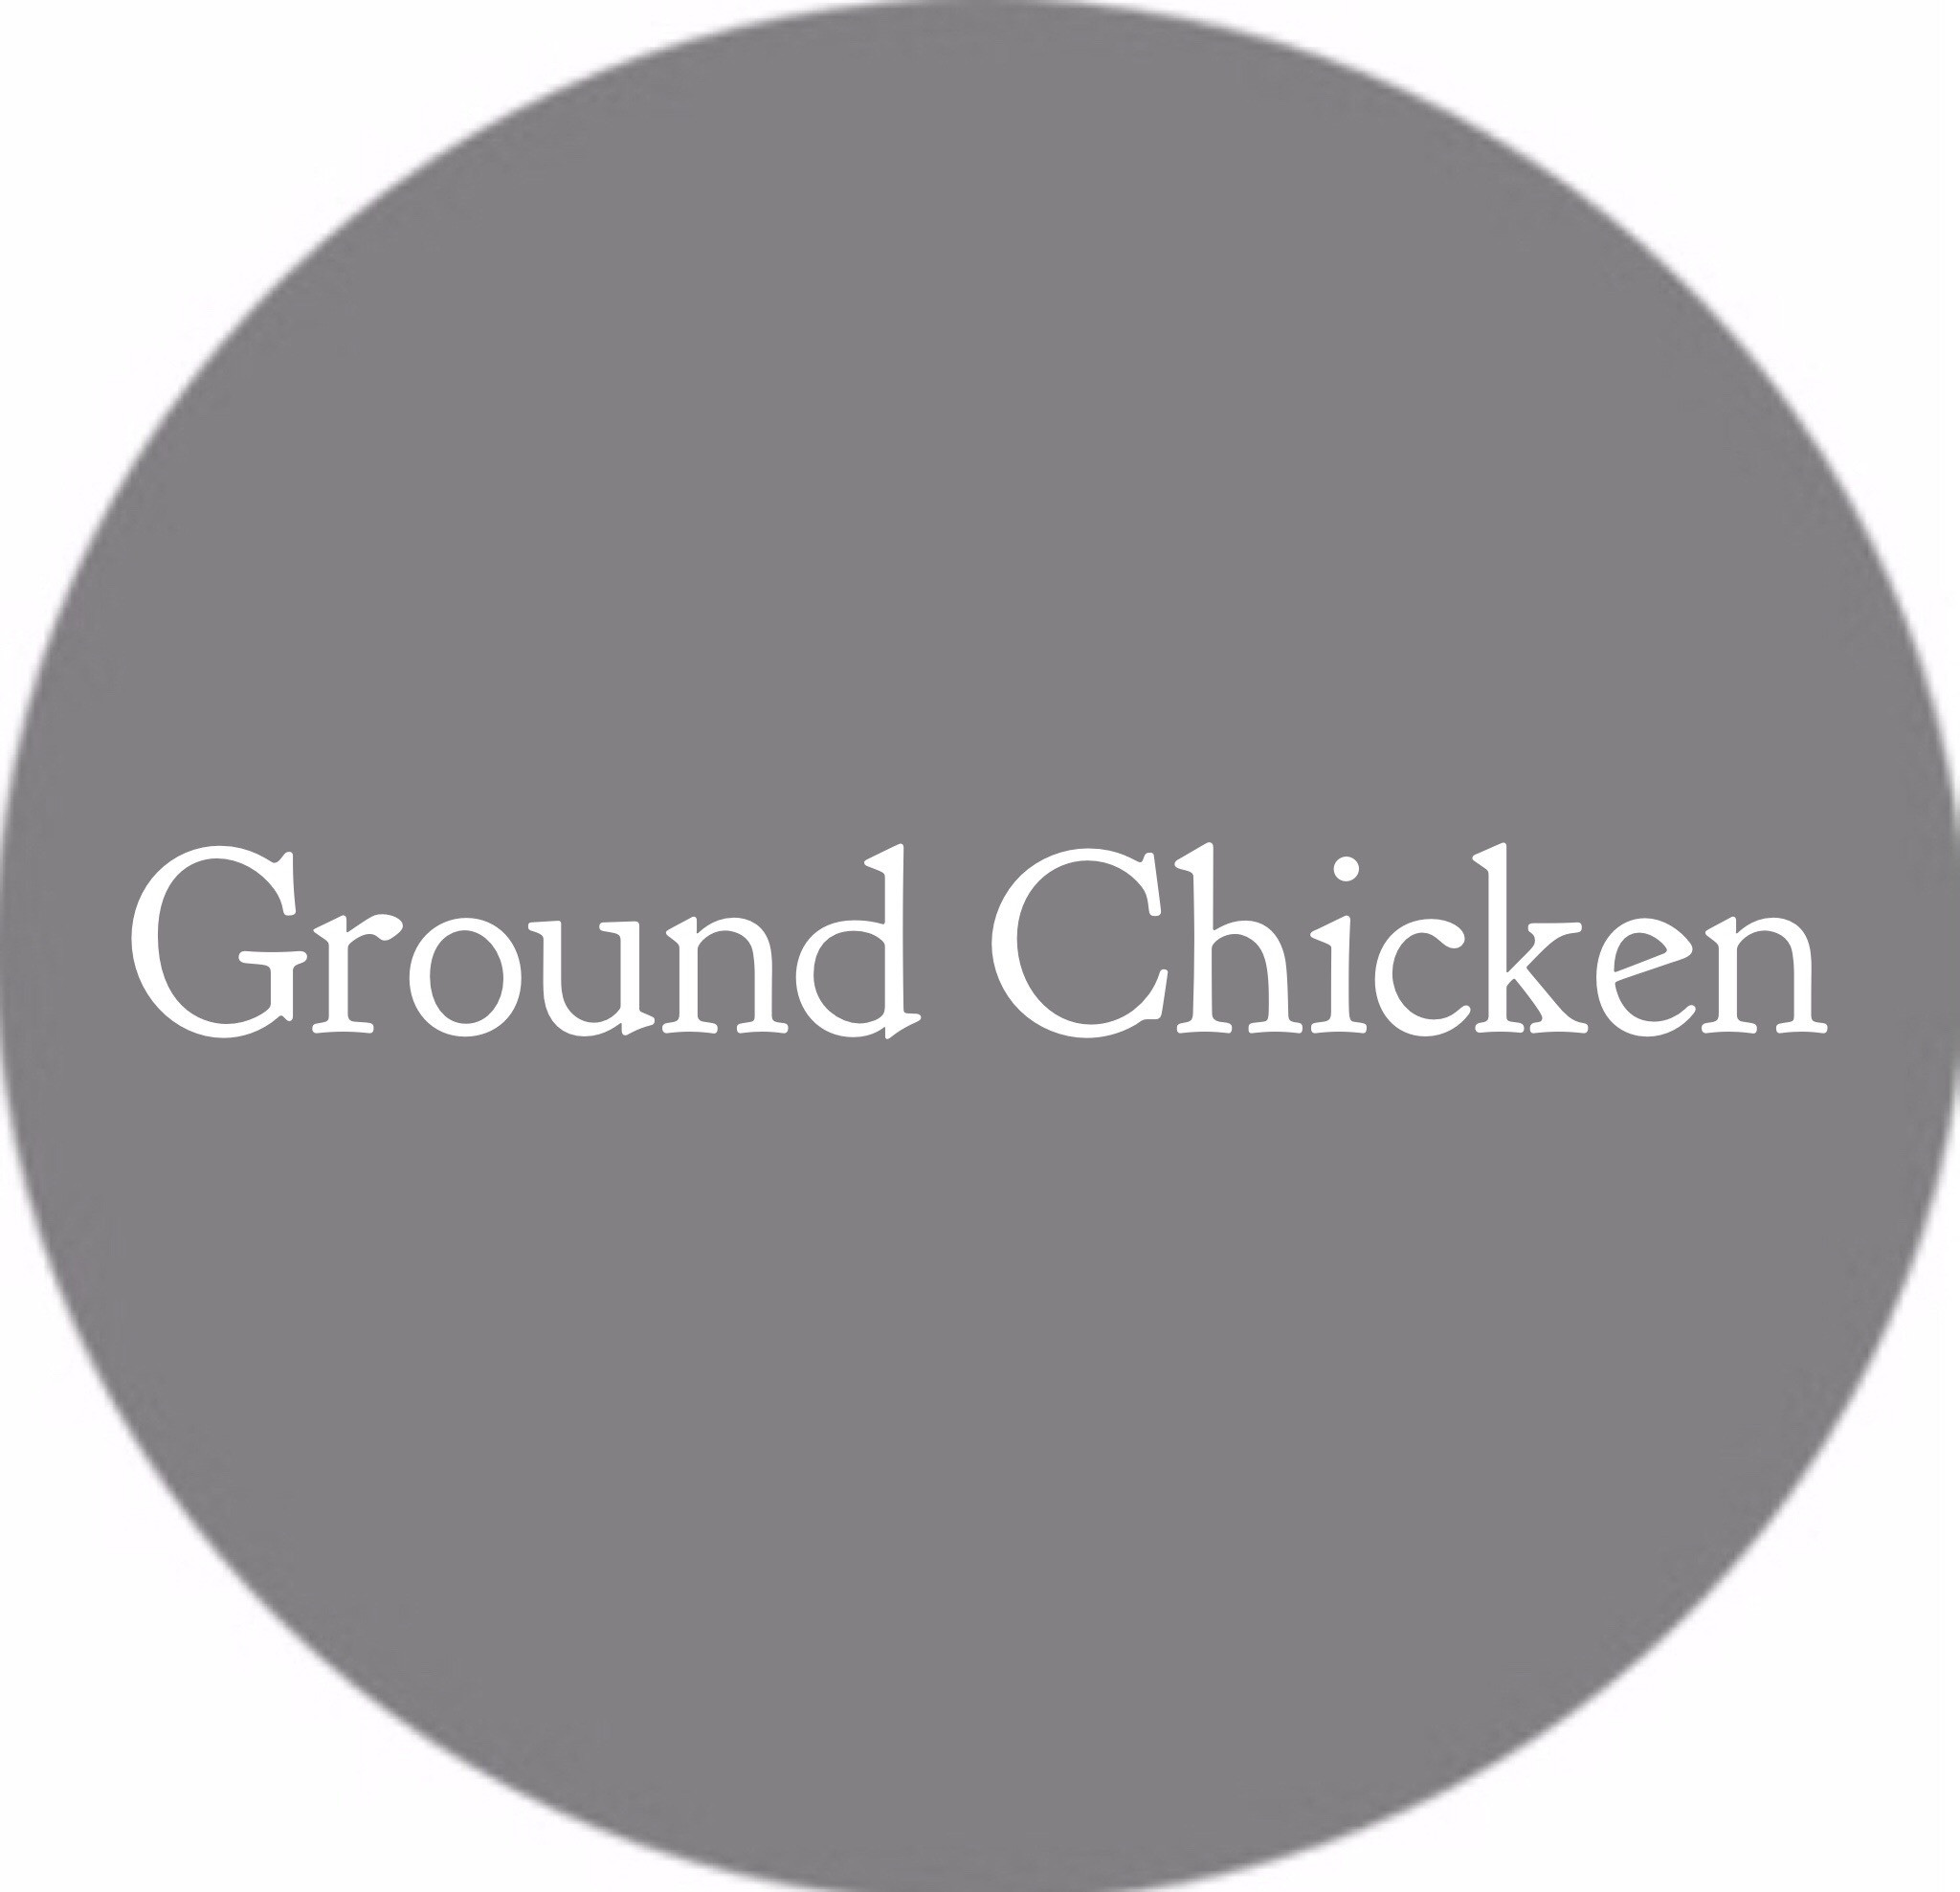 Ground Chicken